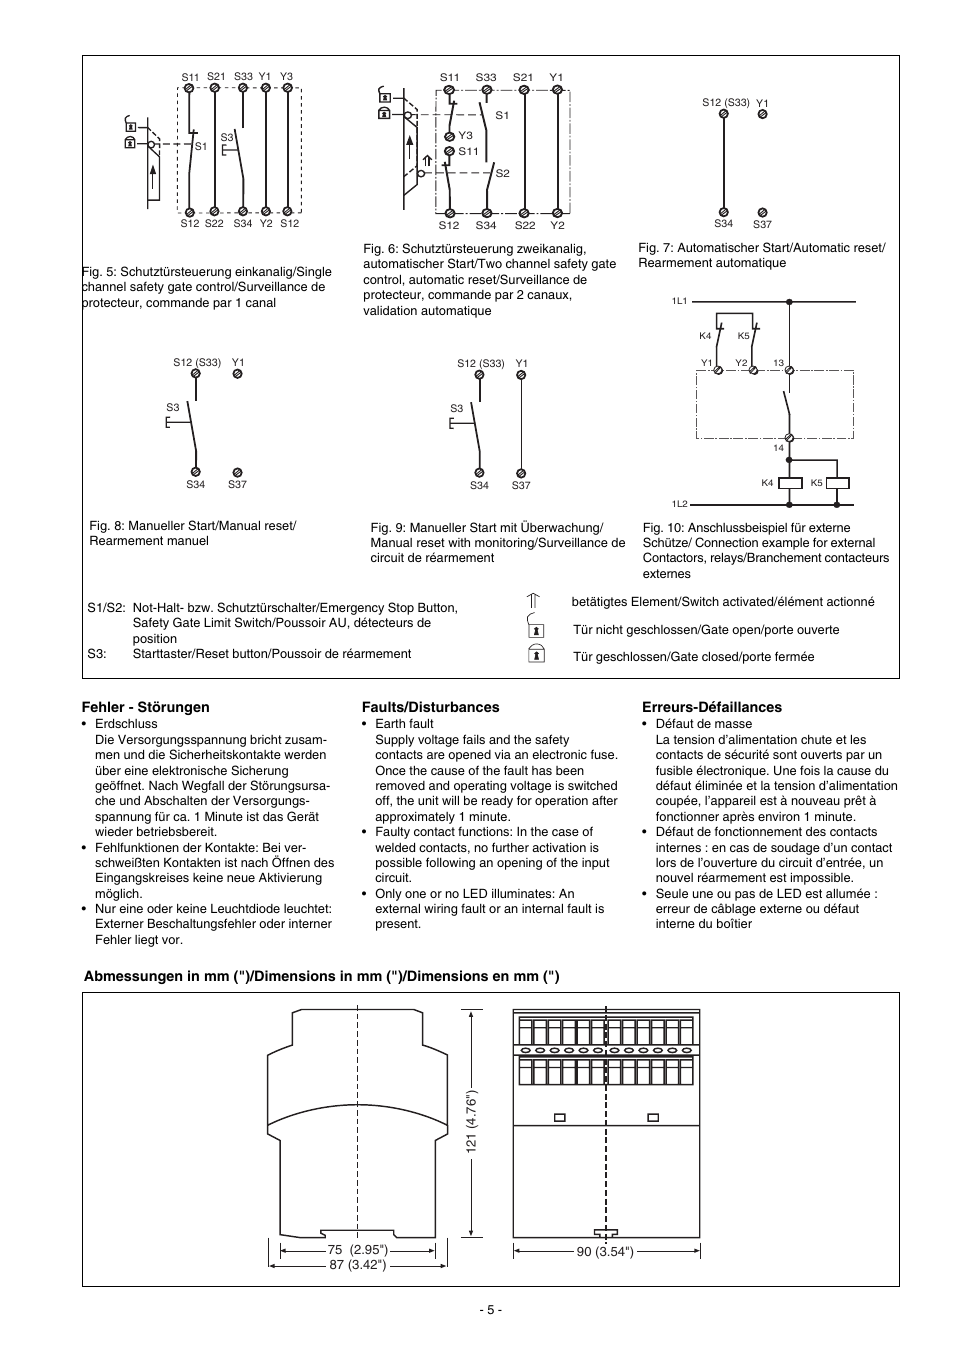 Pilz Pnoz X10 24vdc 6n O 4n C 3led User Manual Page 5 8 Also Wiring Diagram For 230 240vac 110 120vac